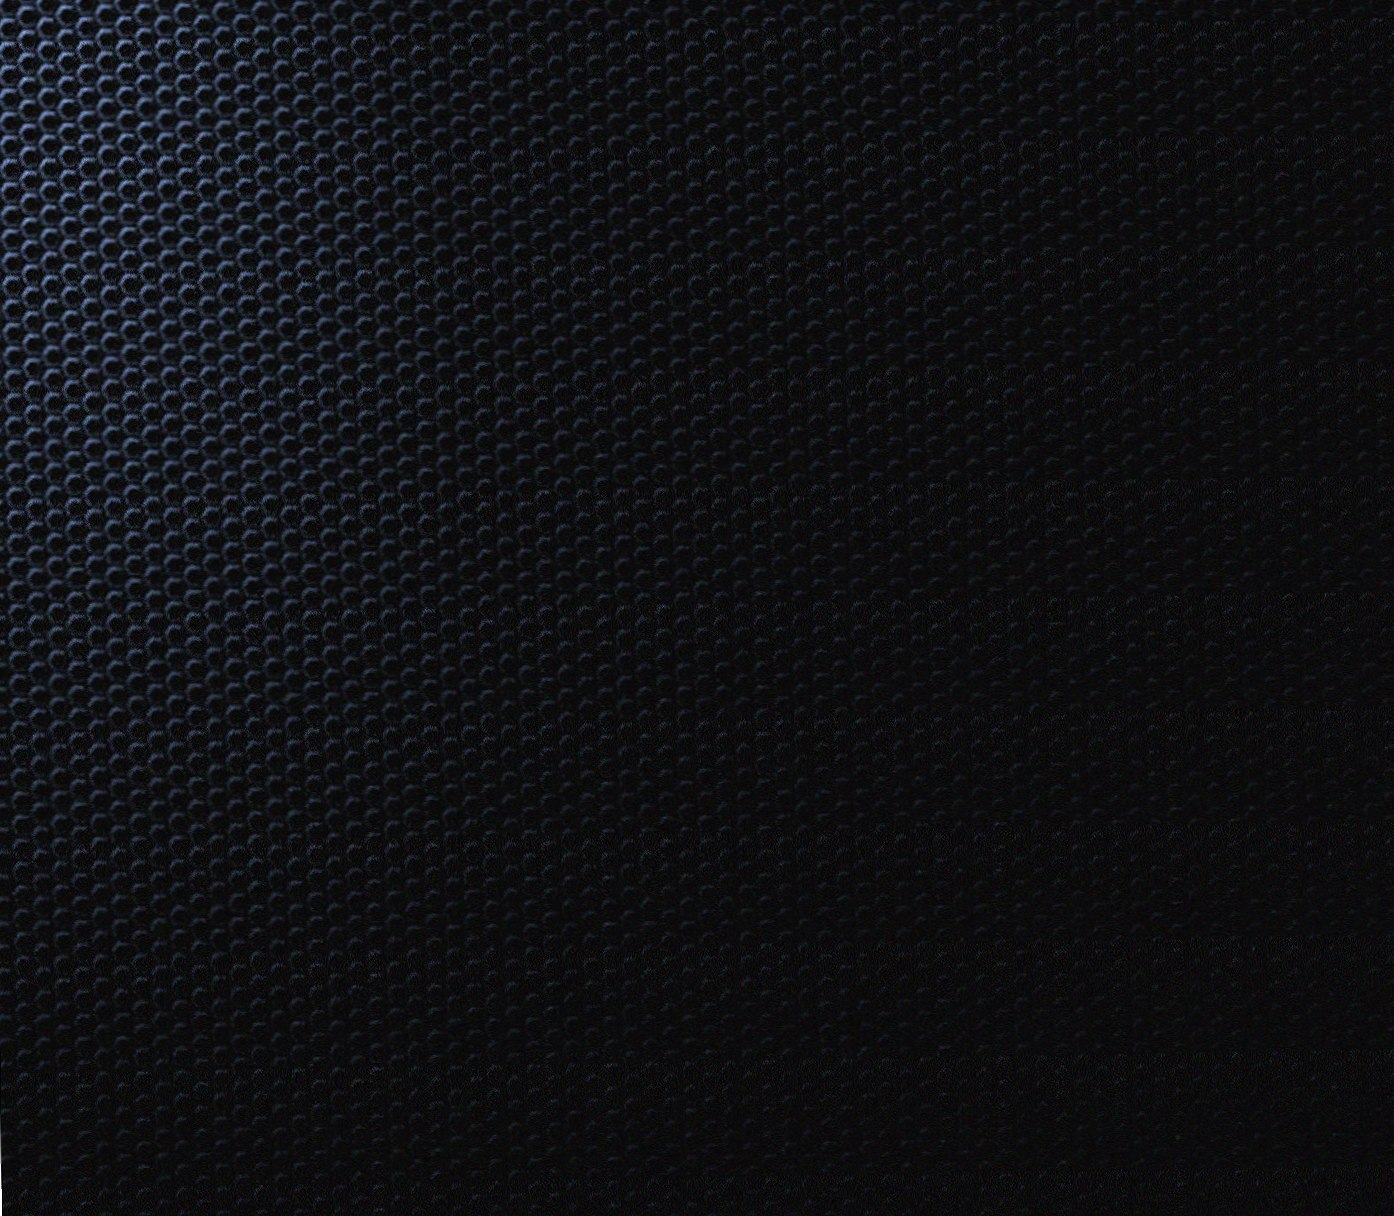 Plain Black wallpapers HD quality